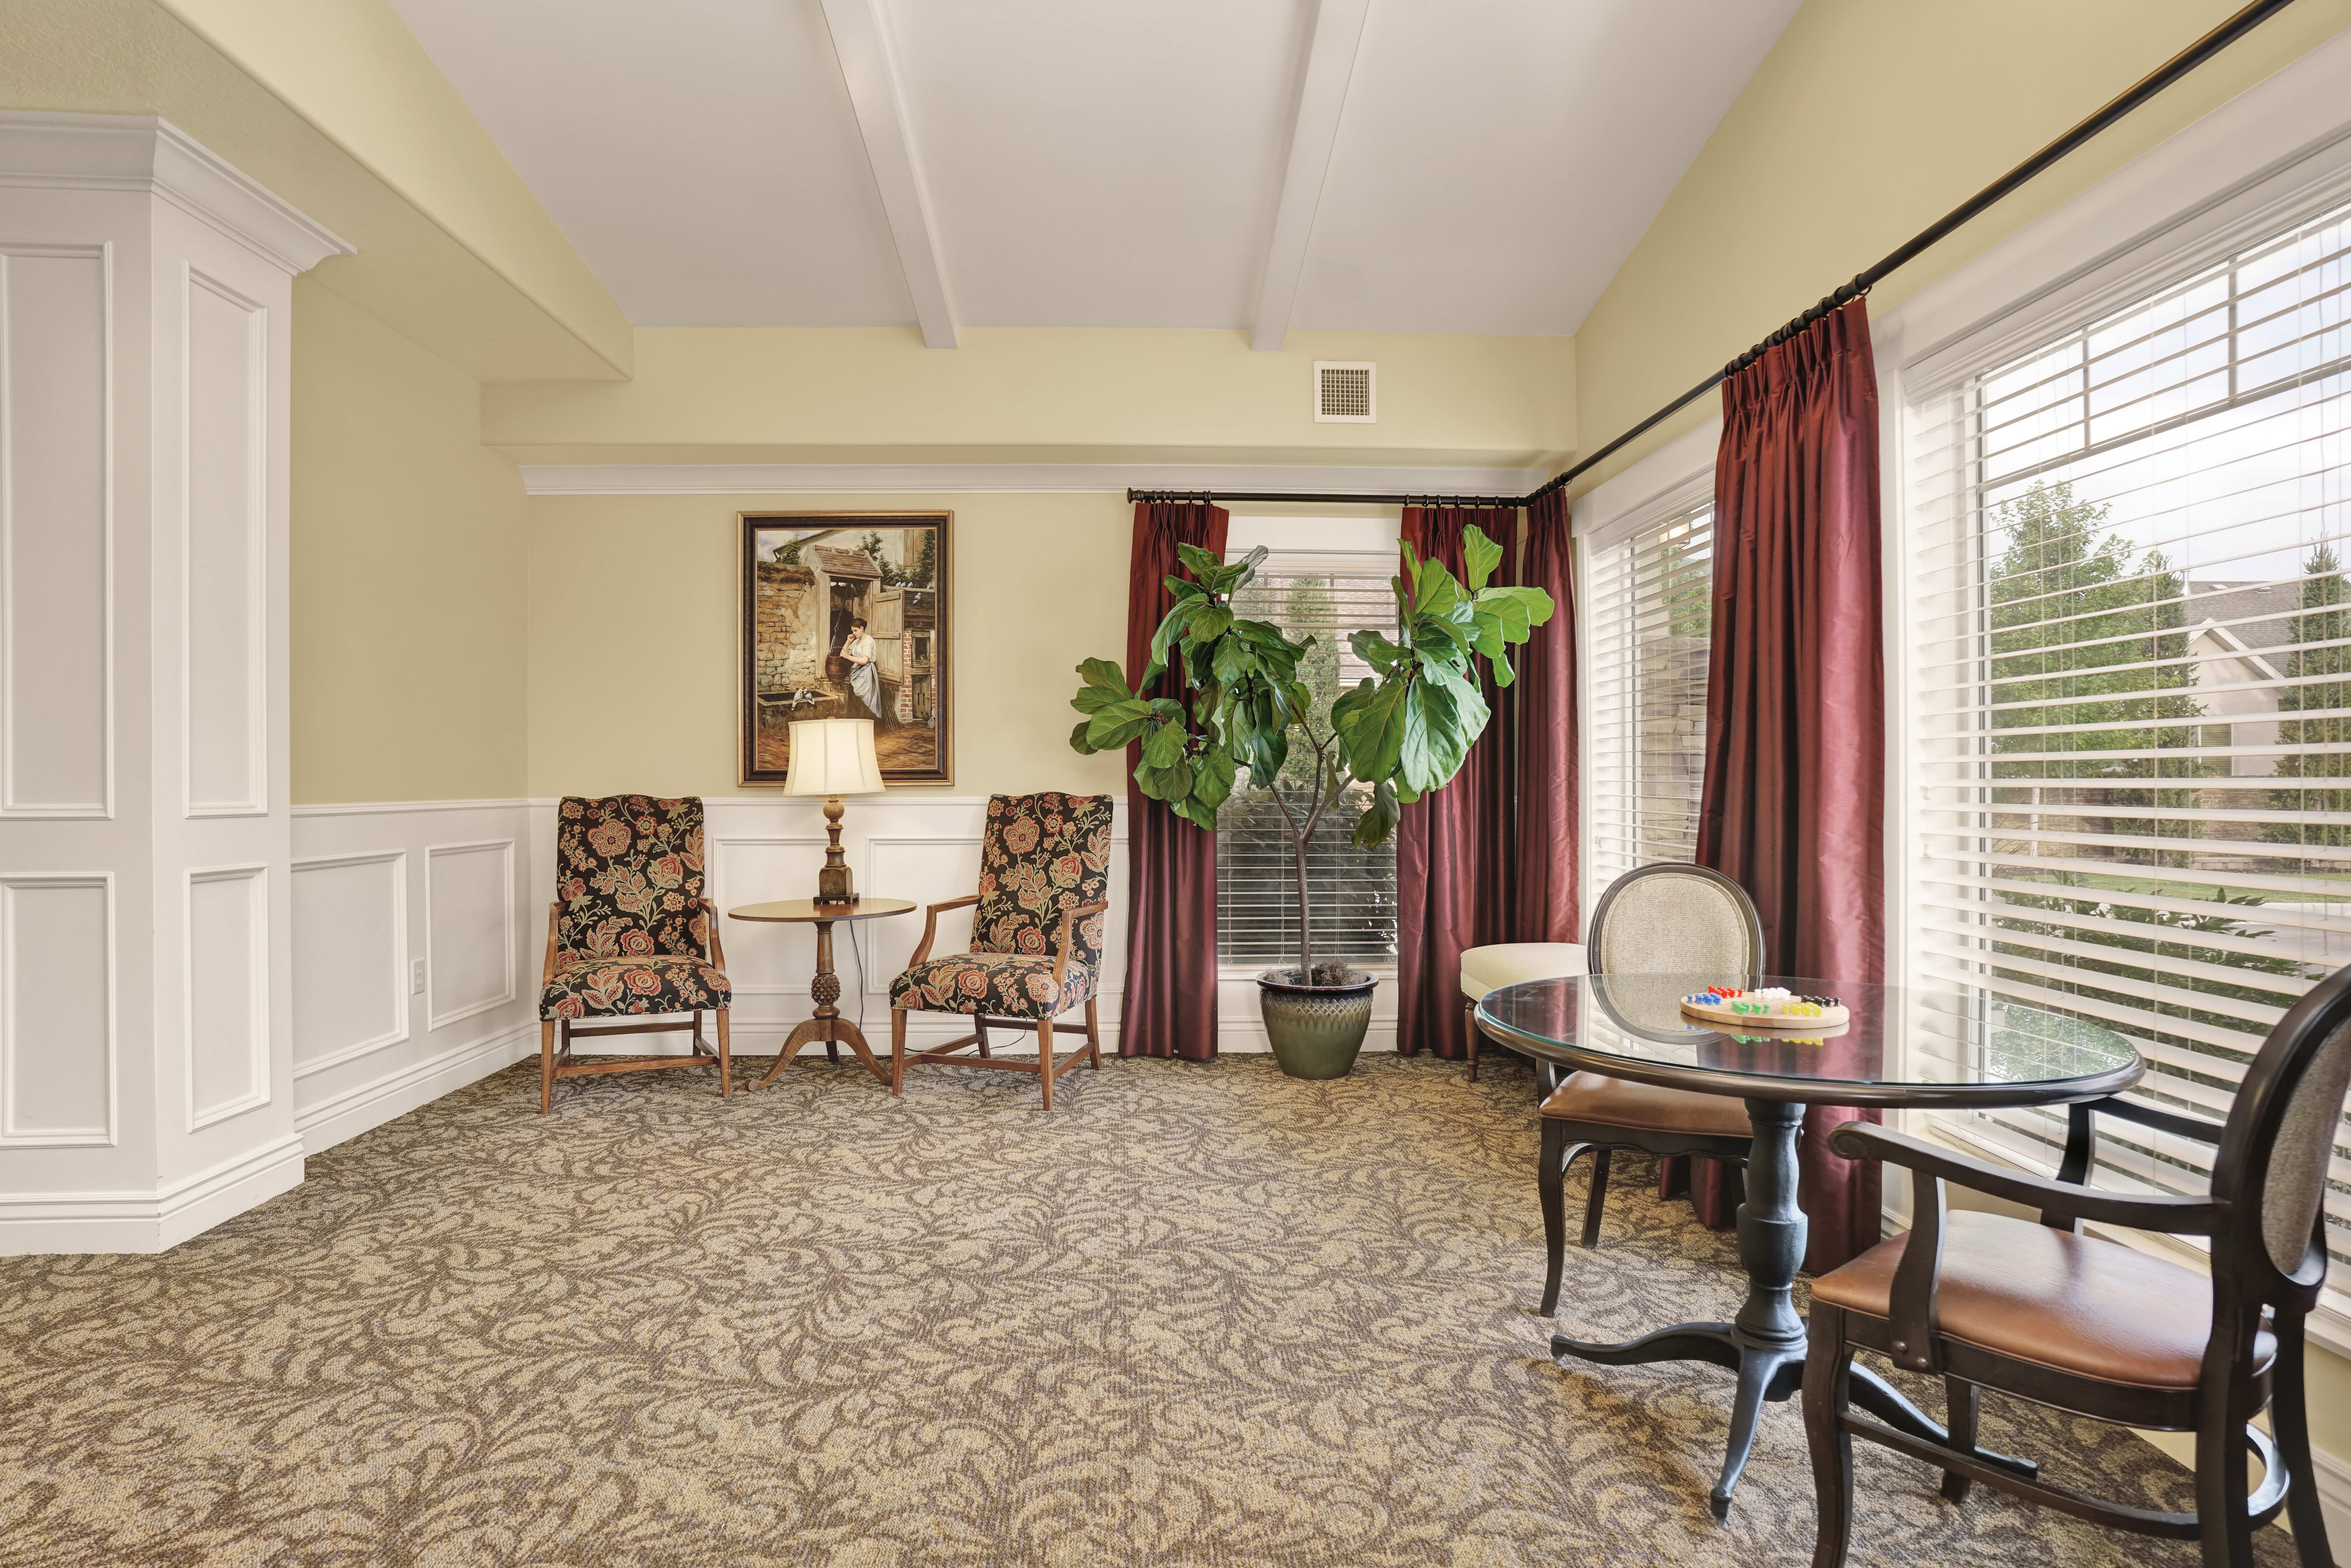 Request more information for the senior living community in Highland